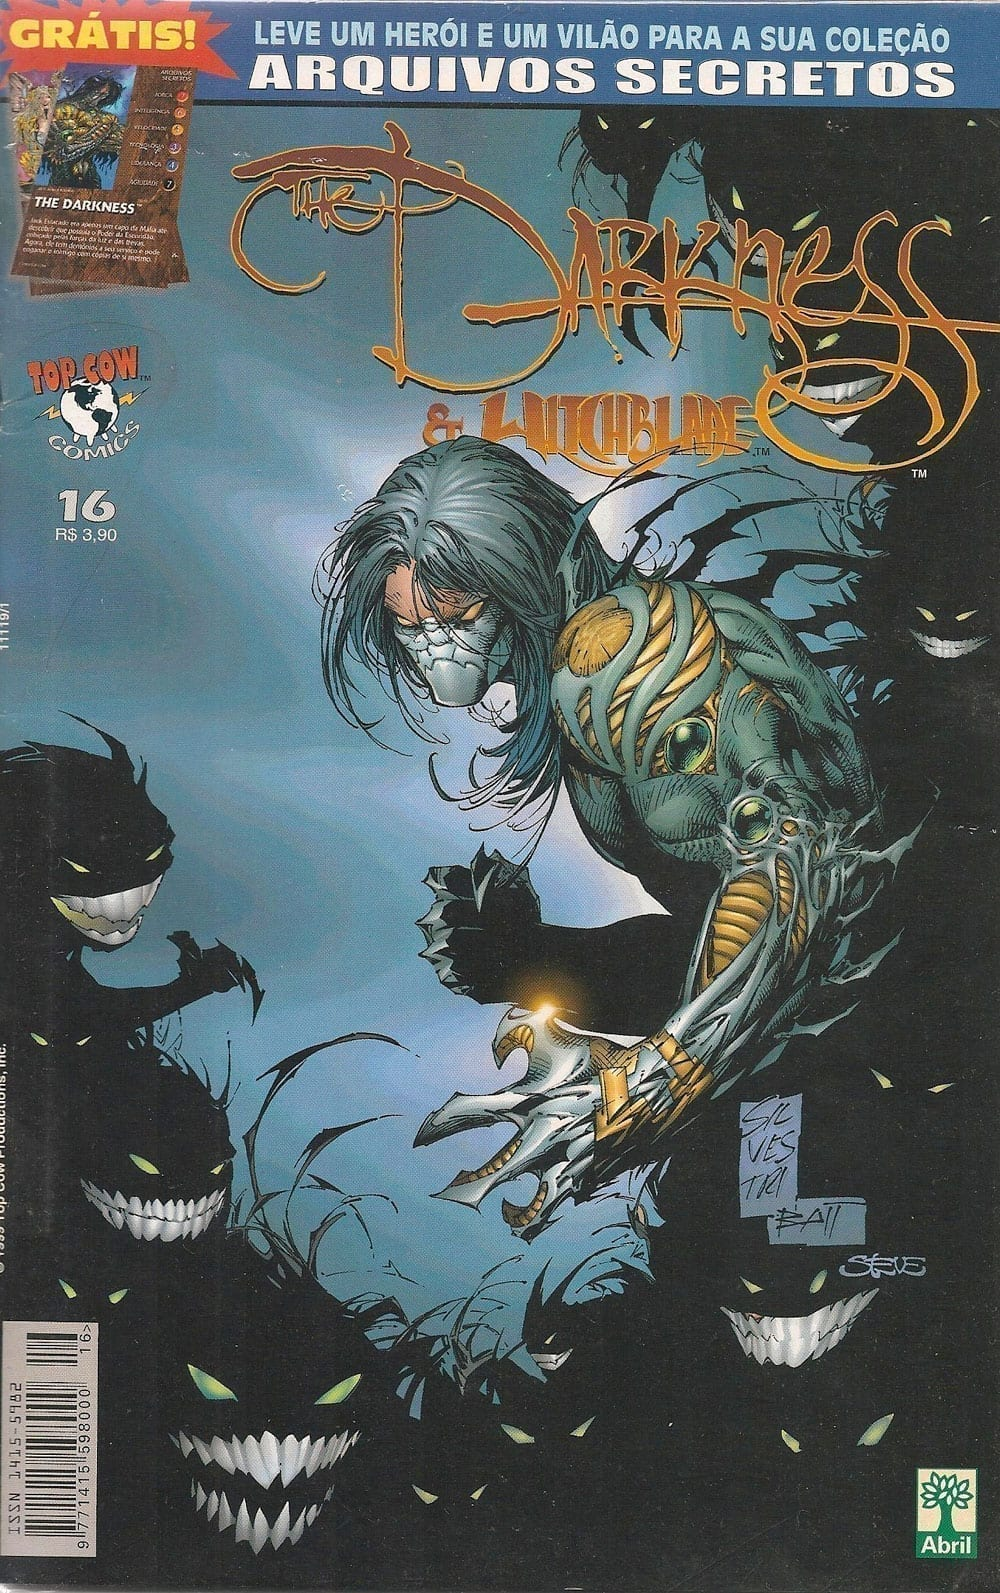 <span>The Darkness & Witchblade 16</span>